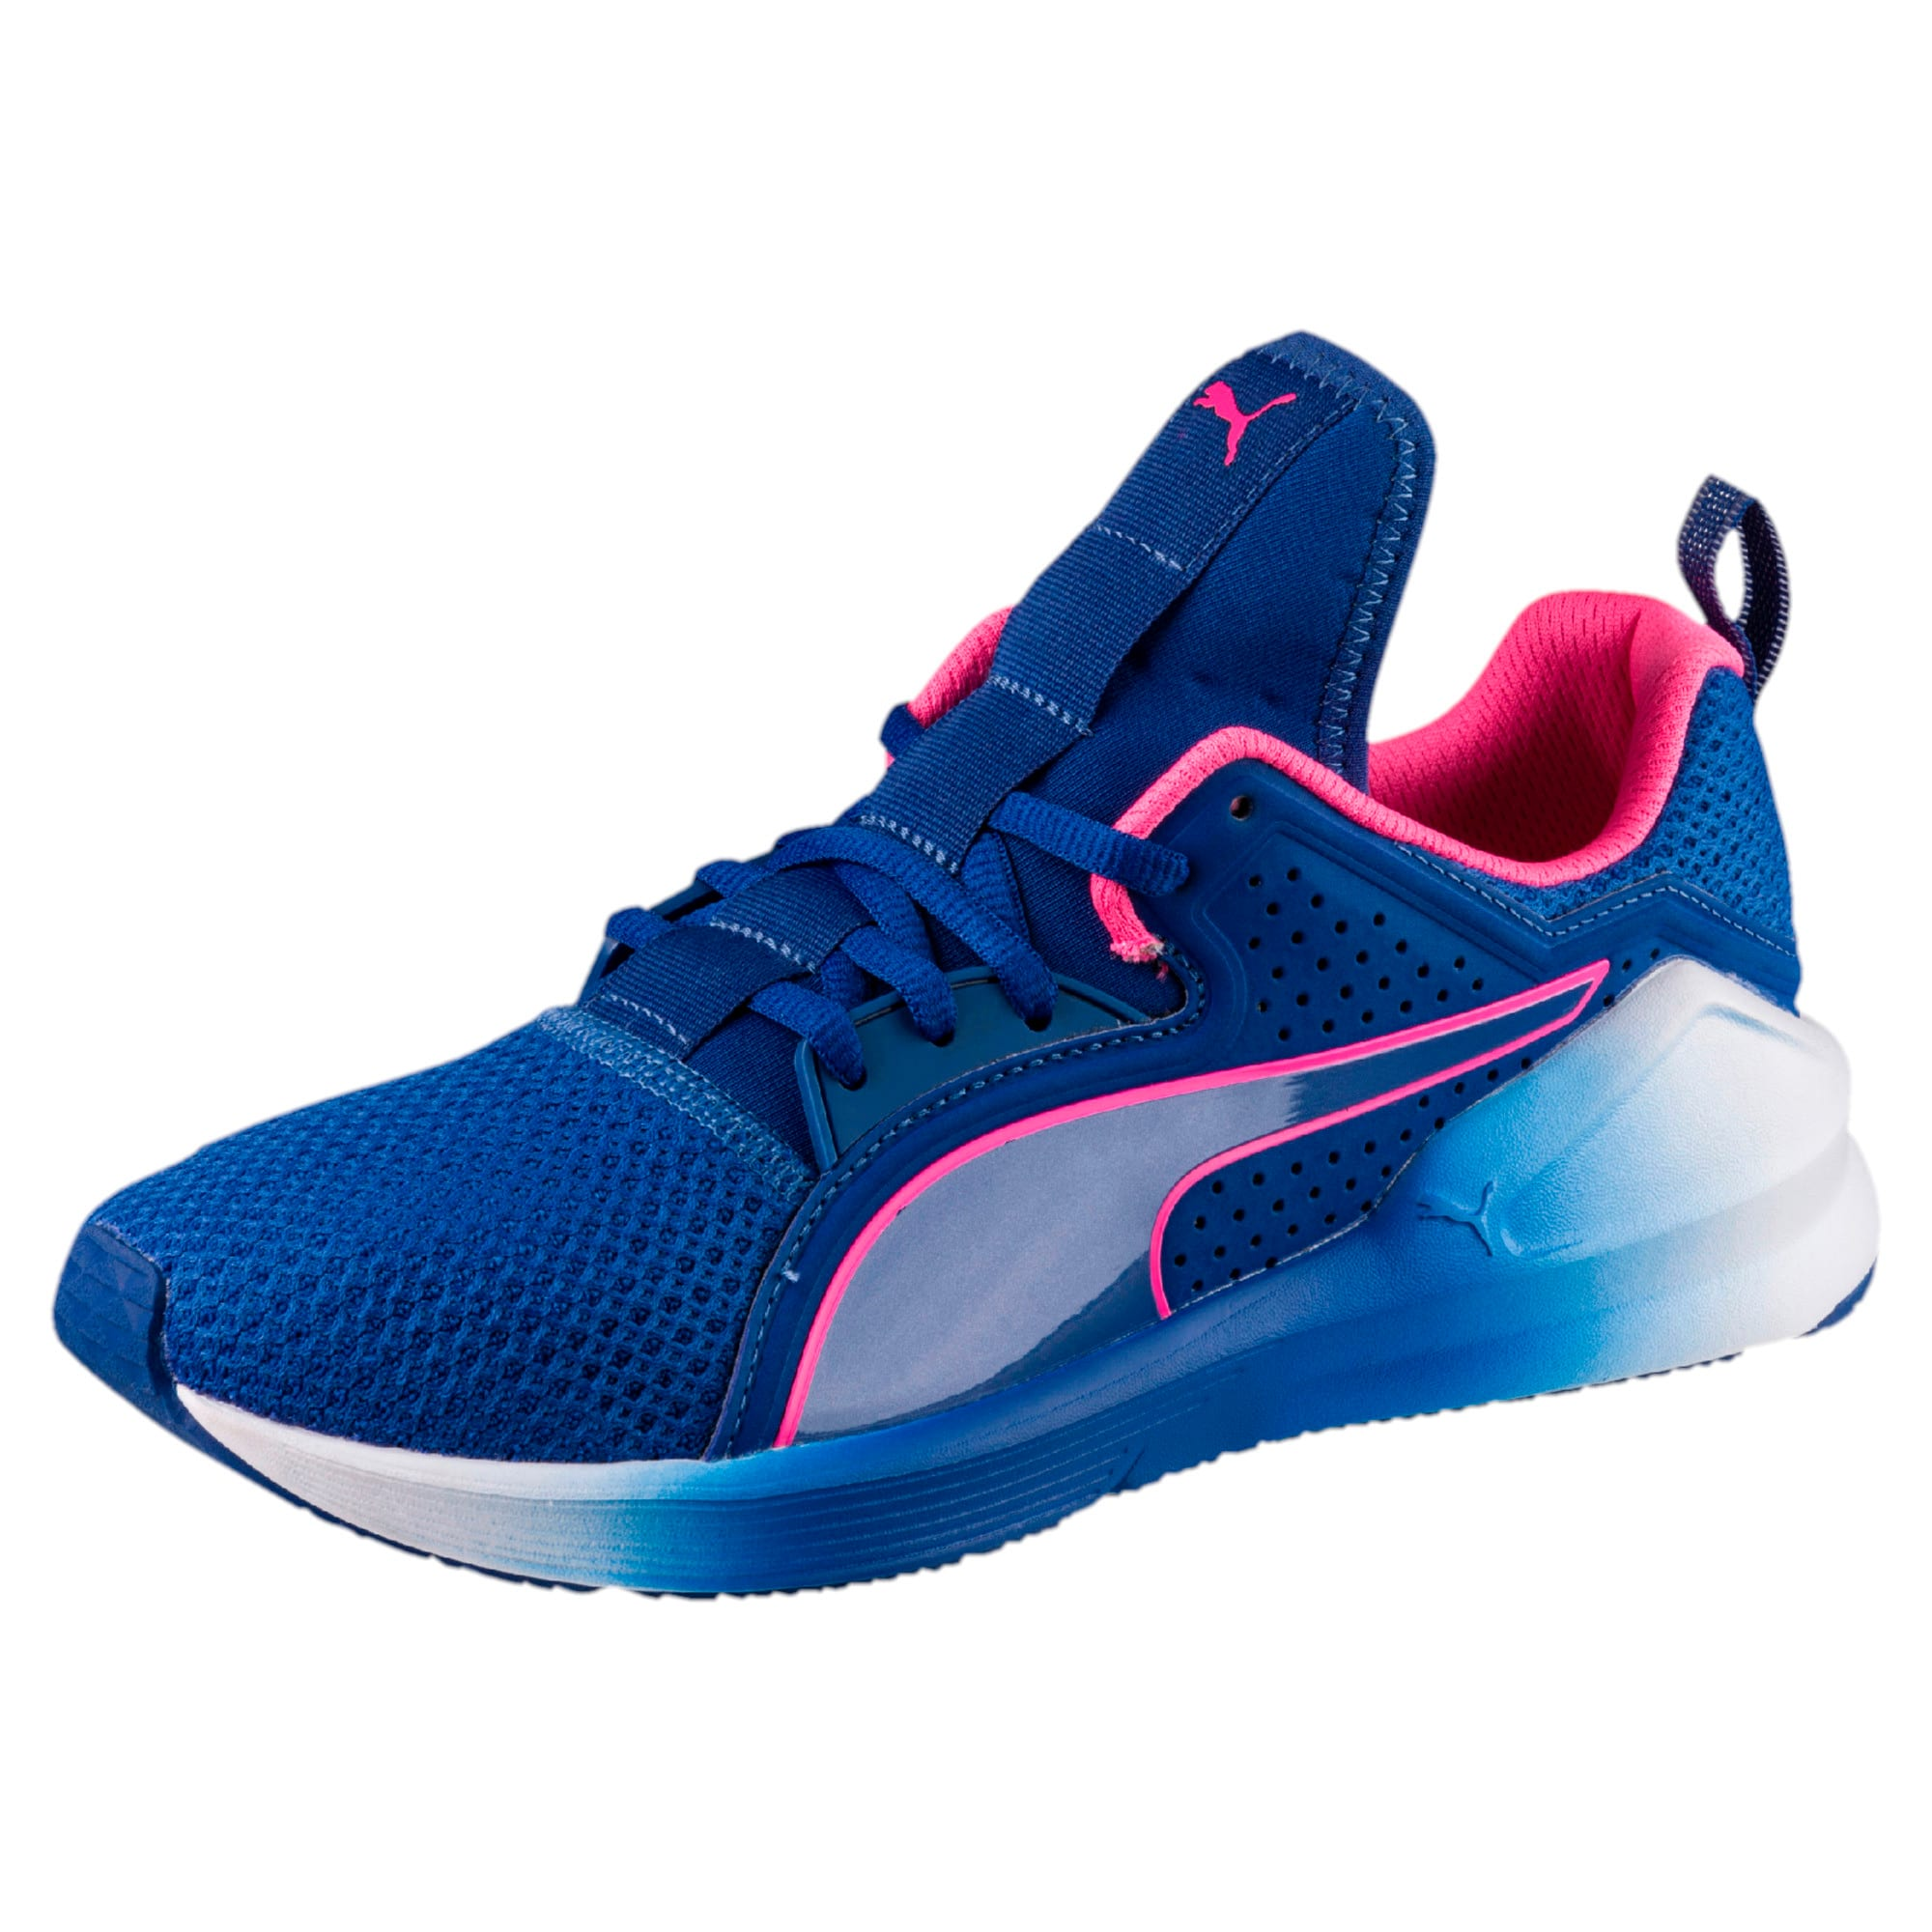 Thumbnail 1 of PUMA Fierce Lace Training Shoes, TRUE BLUE-KNOCKOUT PINK, medium-IND